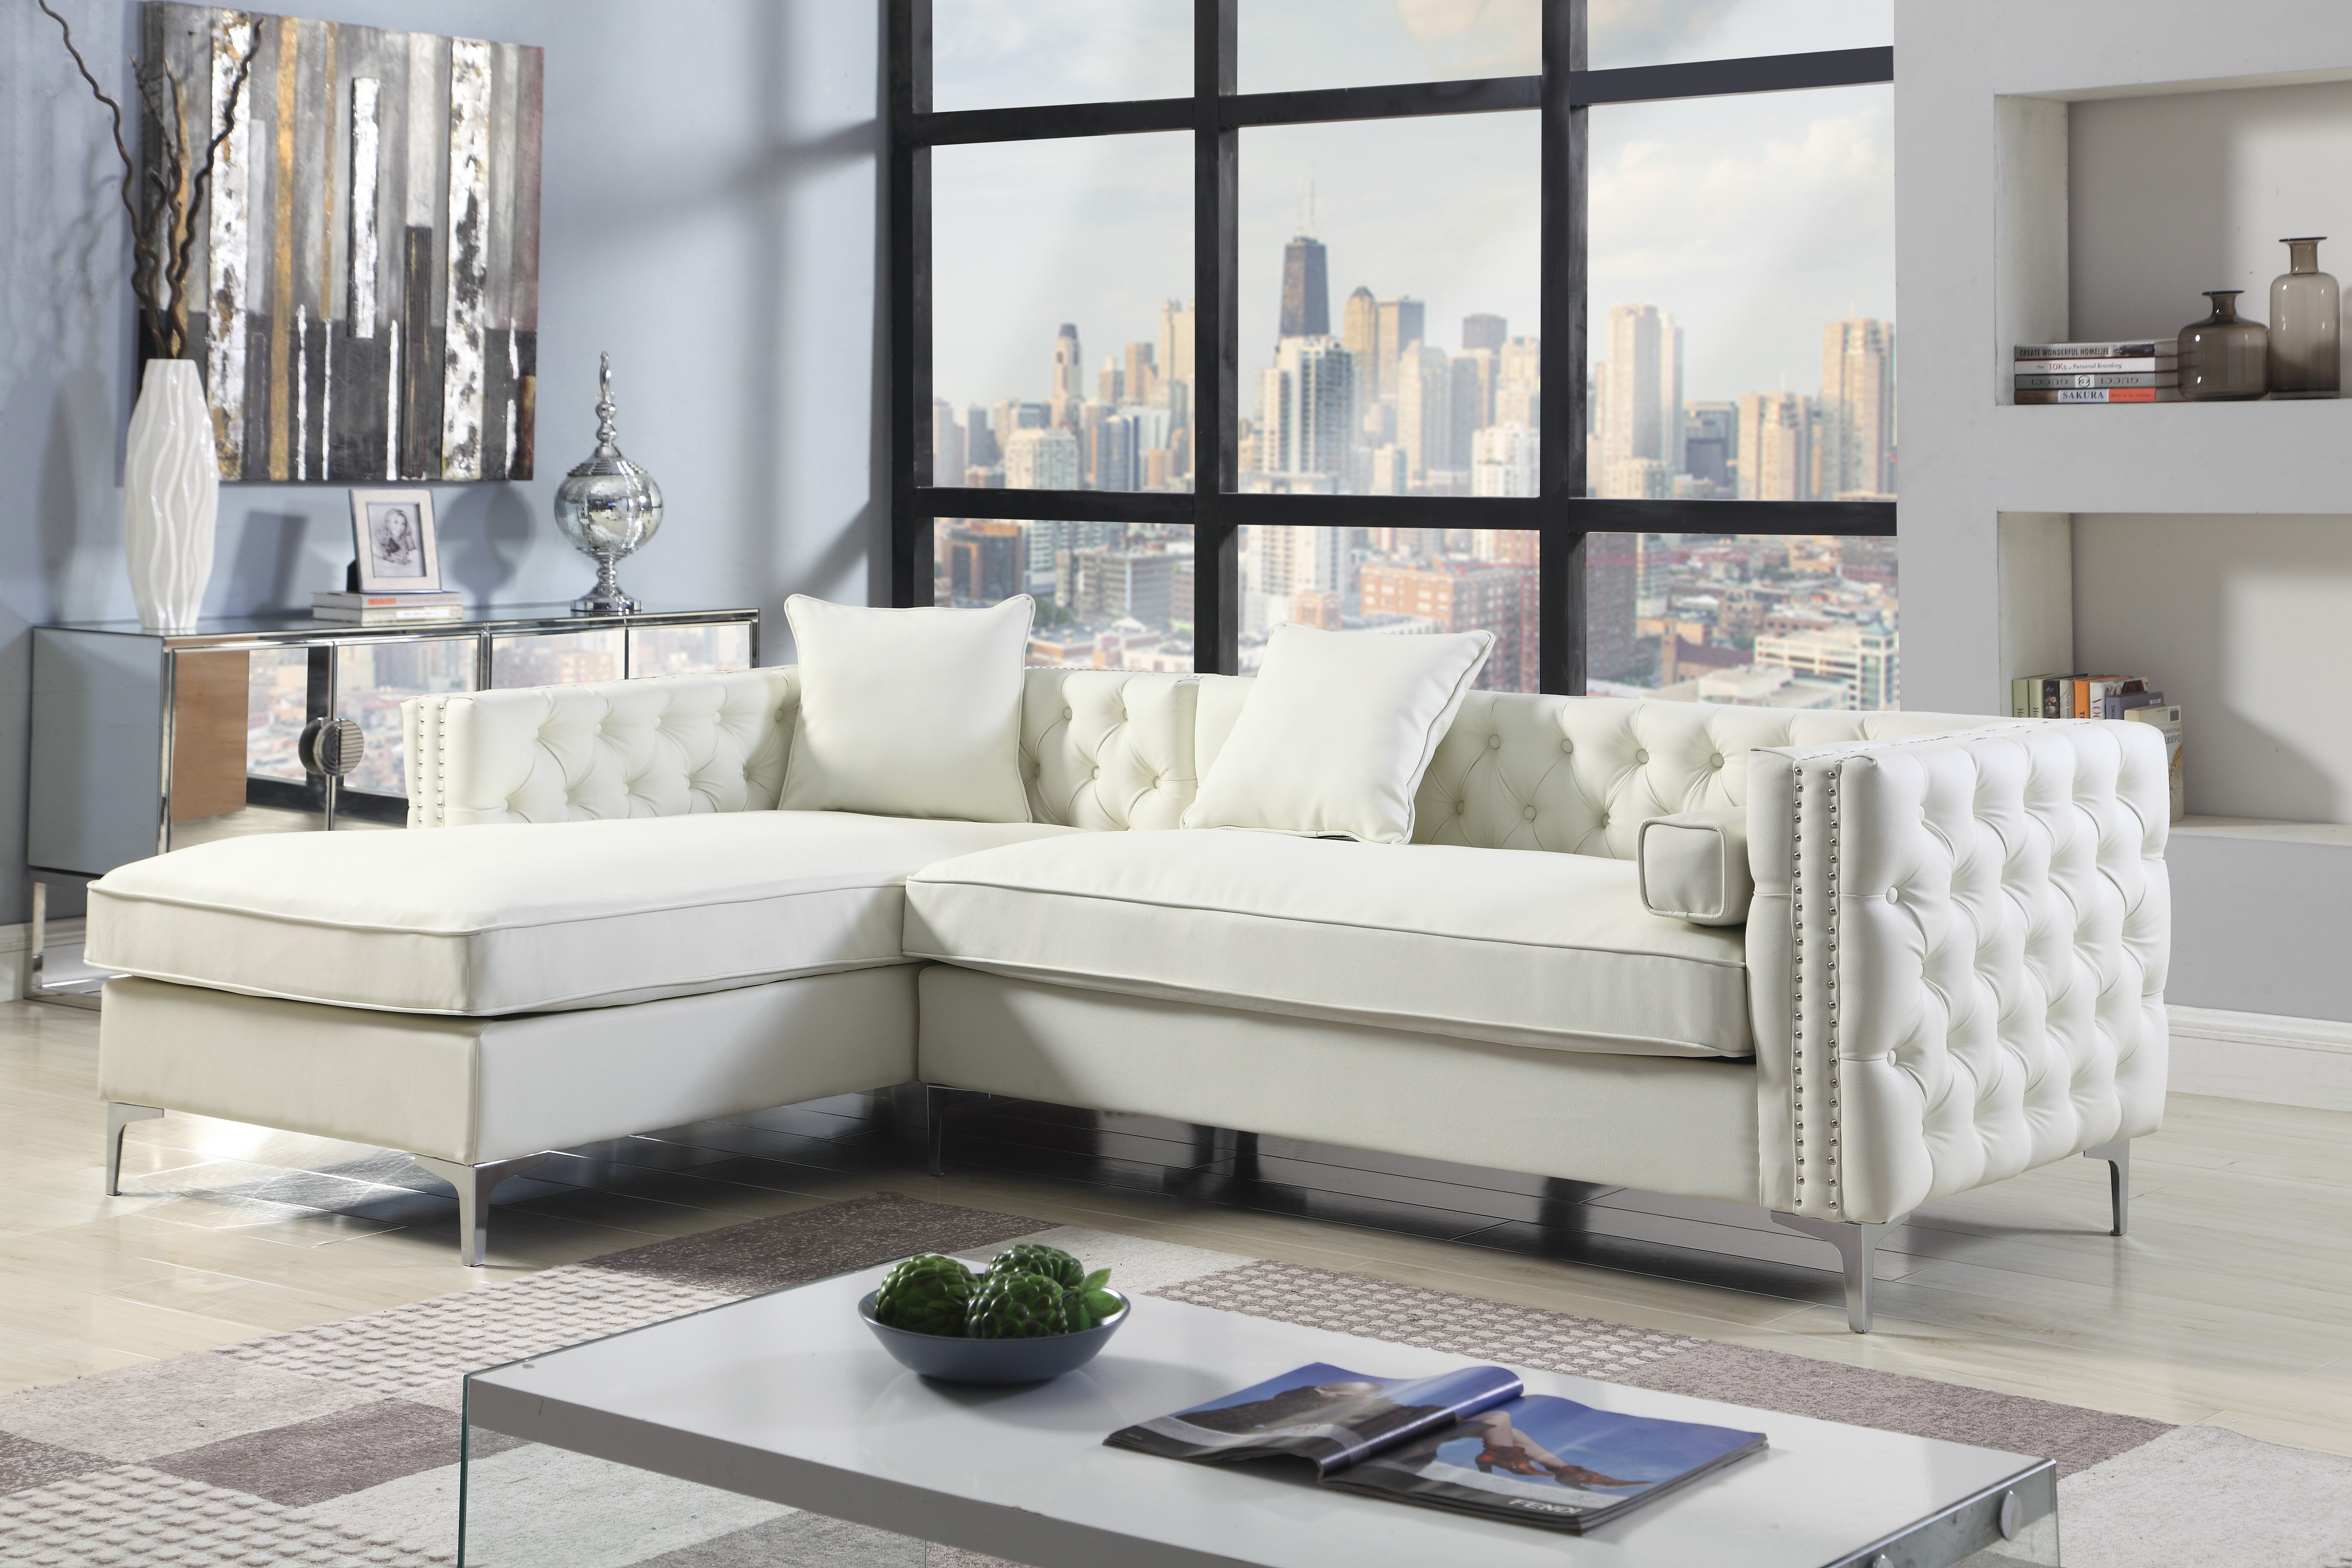 of furniture oversized modular sectional sale ikea couches tag club u for shaped sectionals sams room with ideas living leather reclining sofas lovely on couch grobania beautiful discount